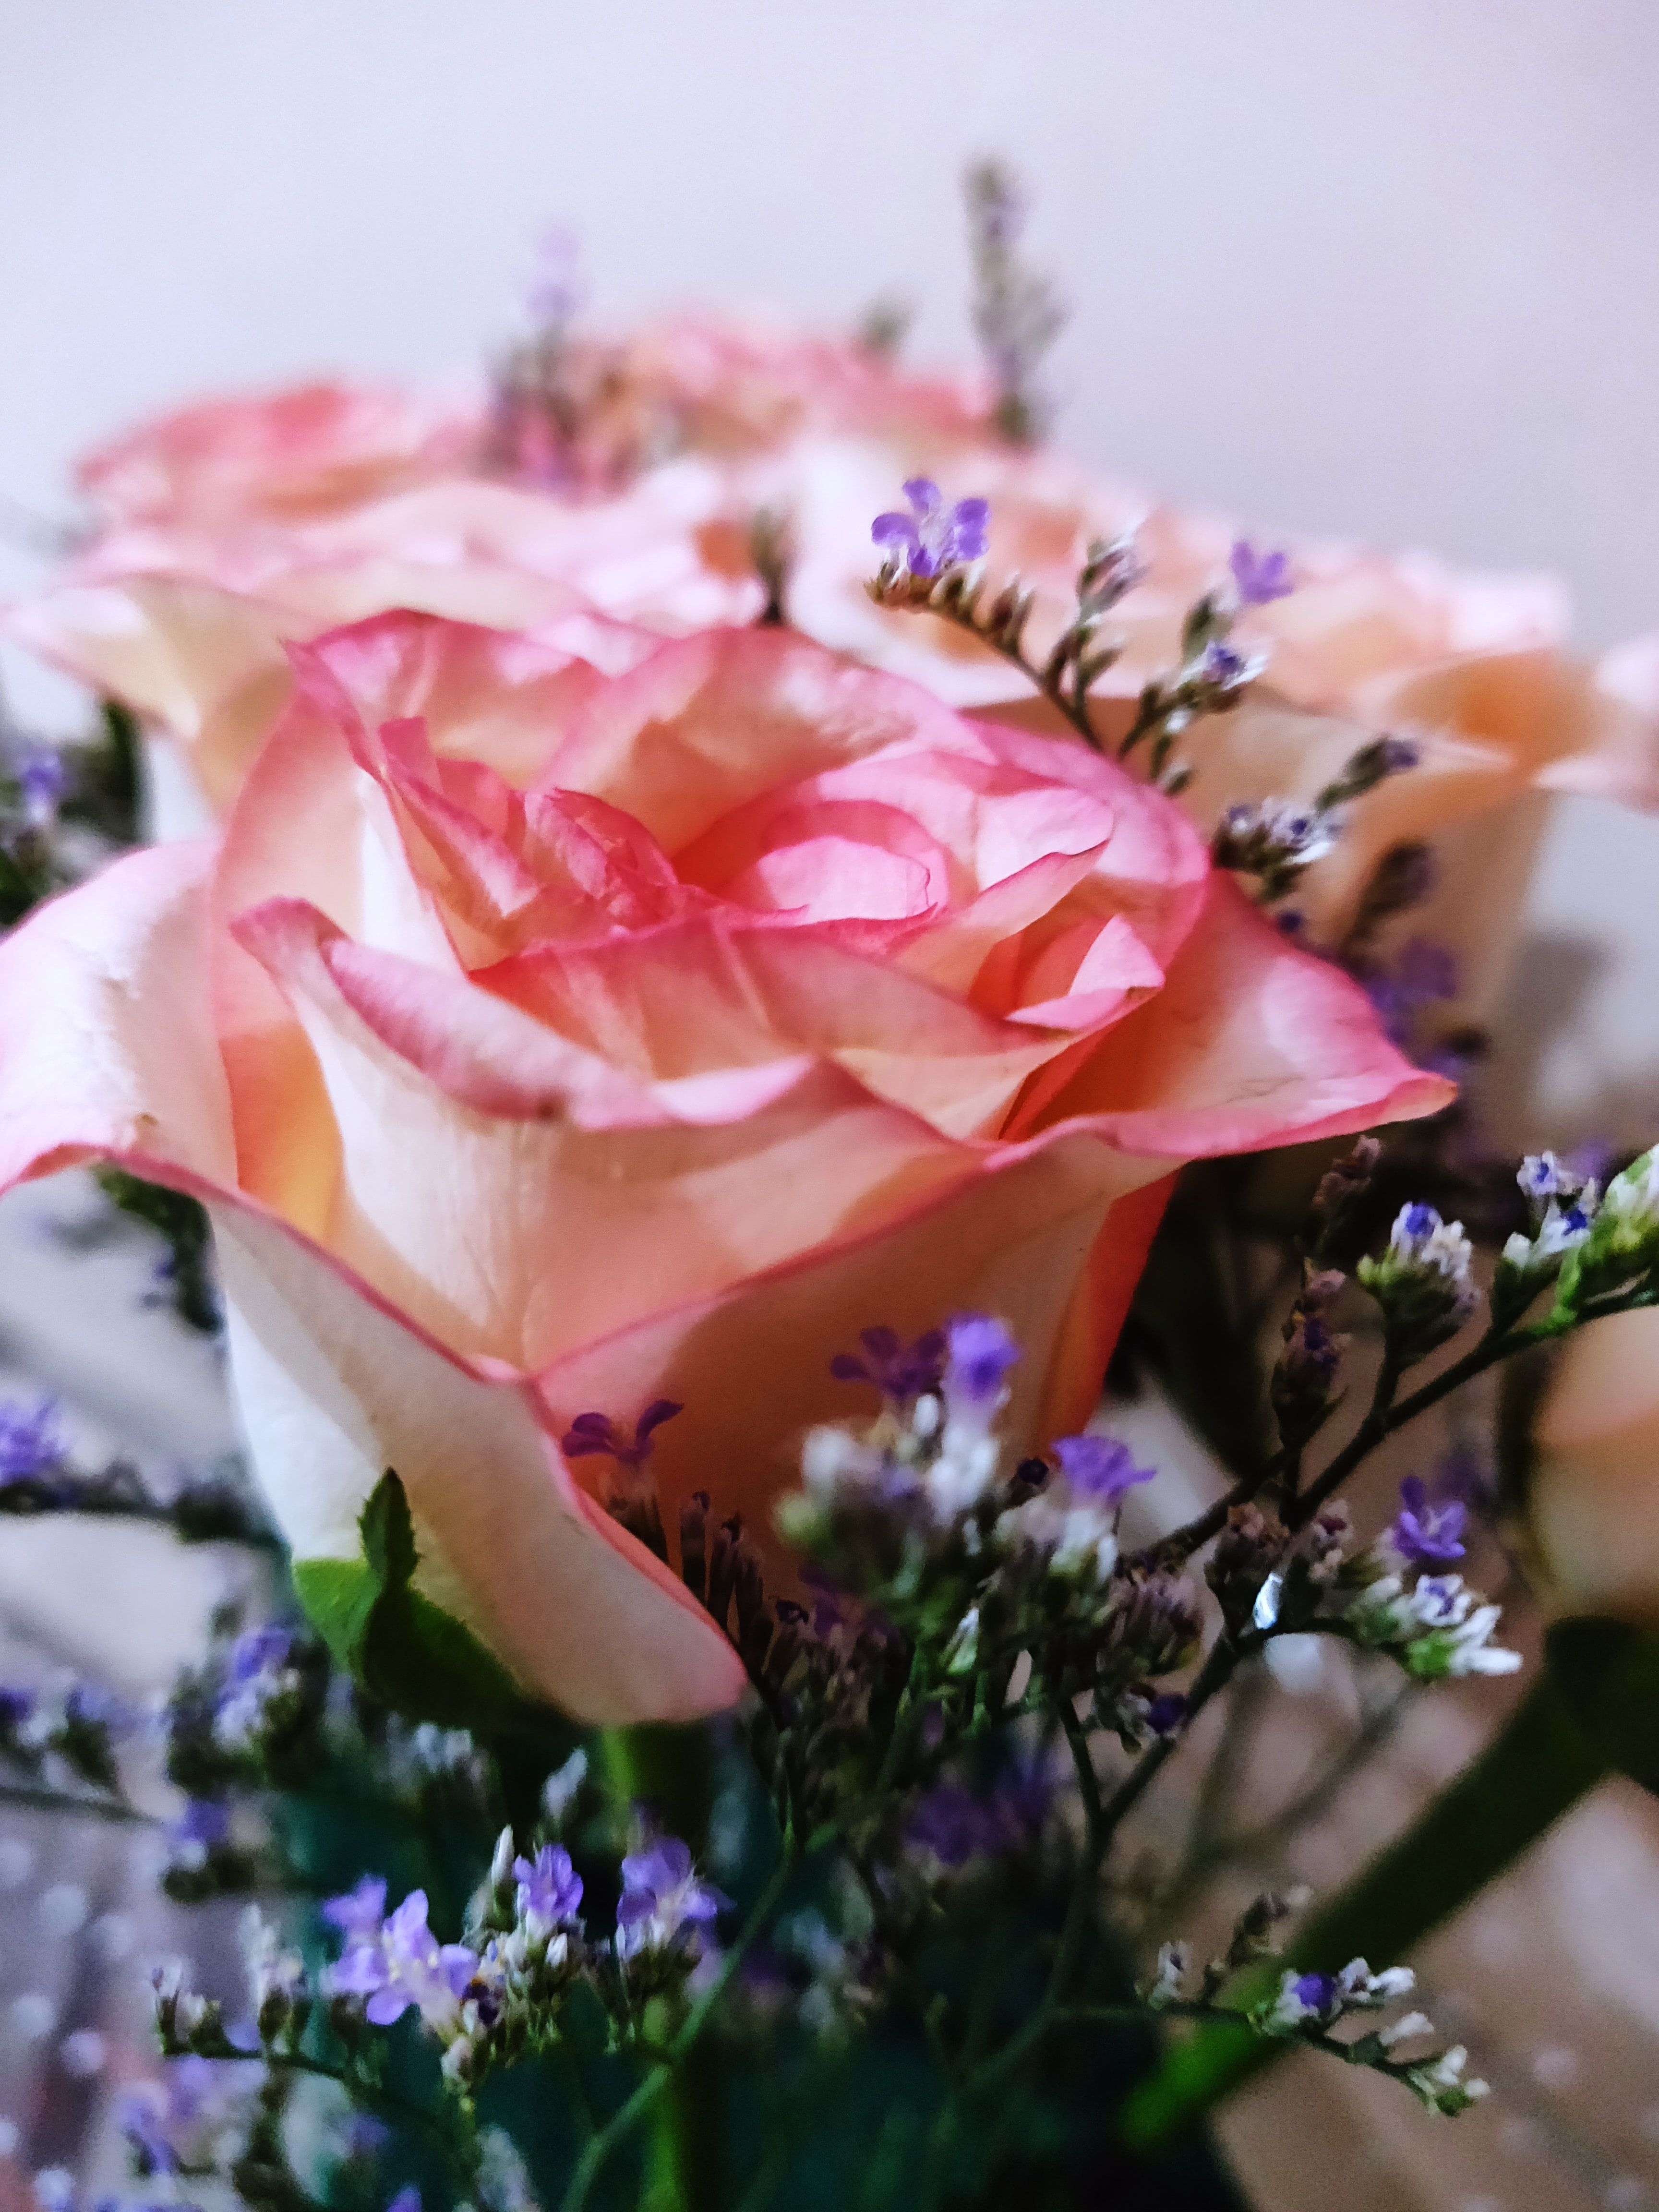 Pink Rose Flowers Beautiful Flowers Images Rose Flower